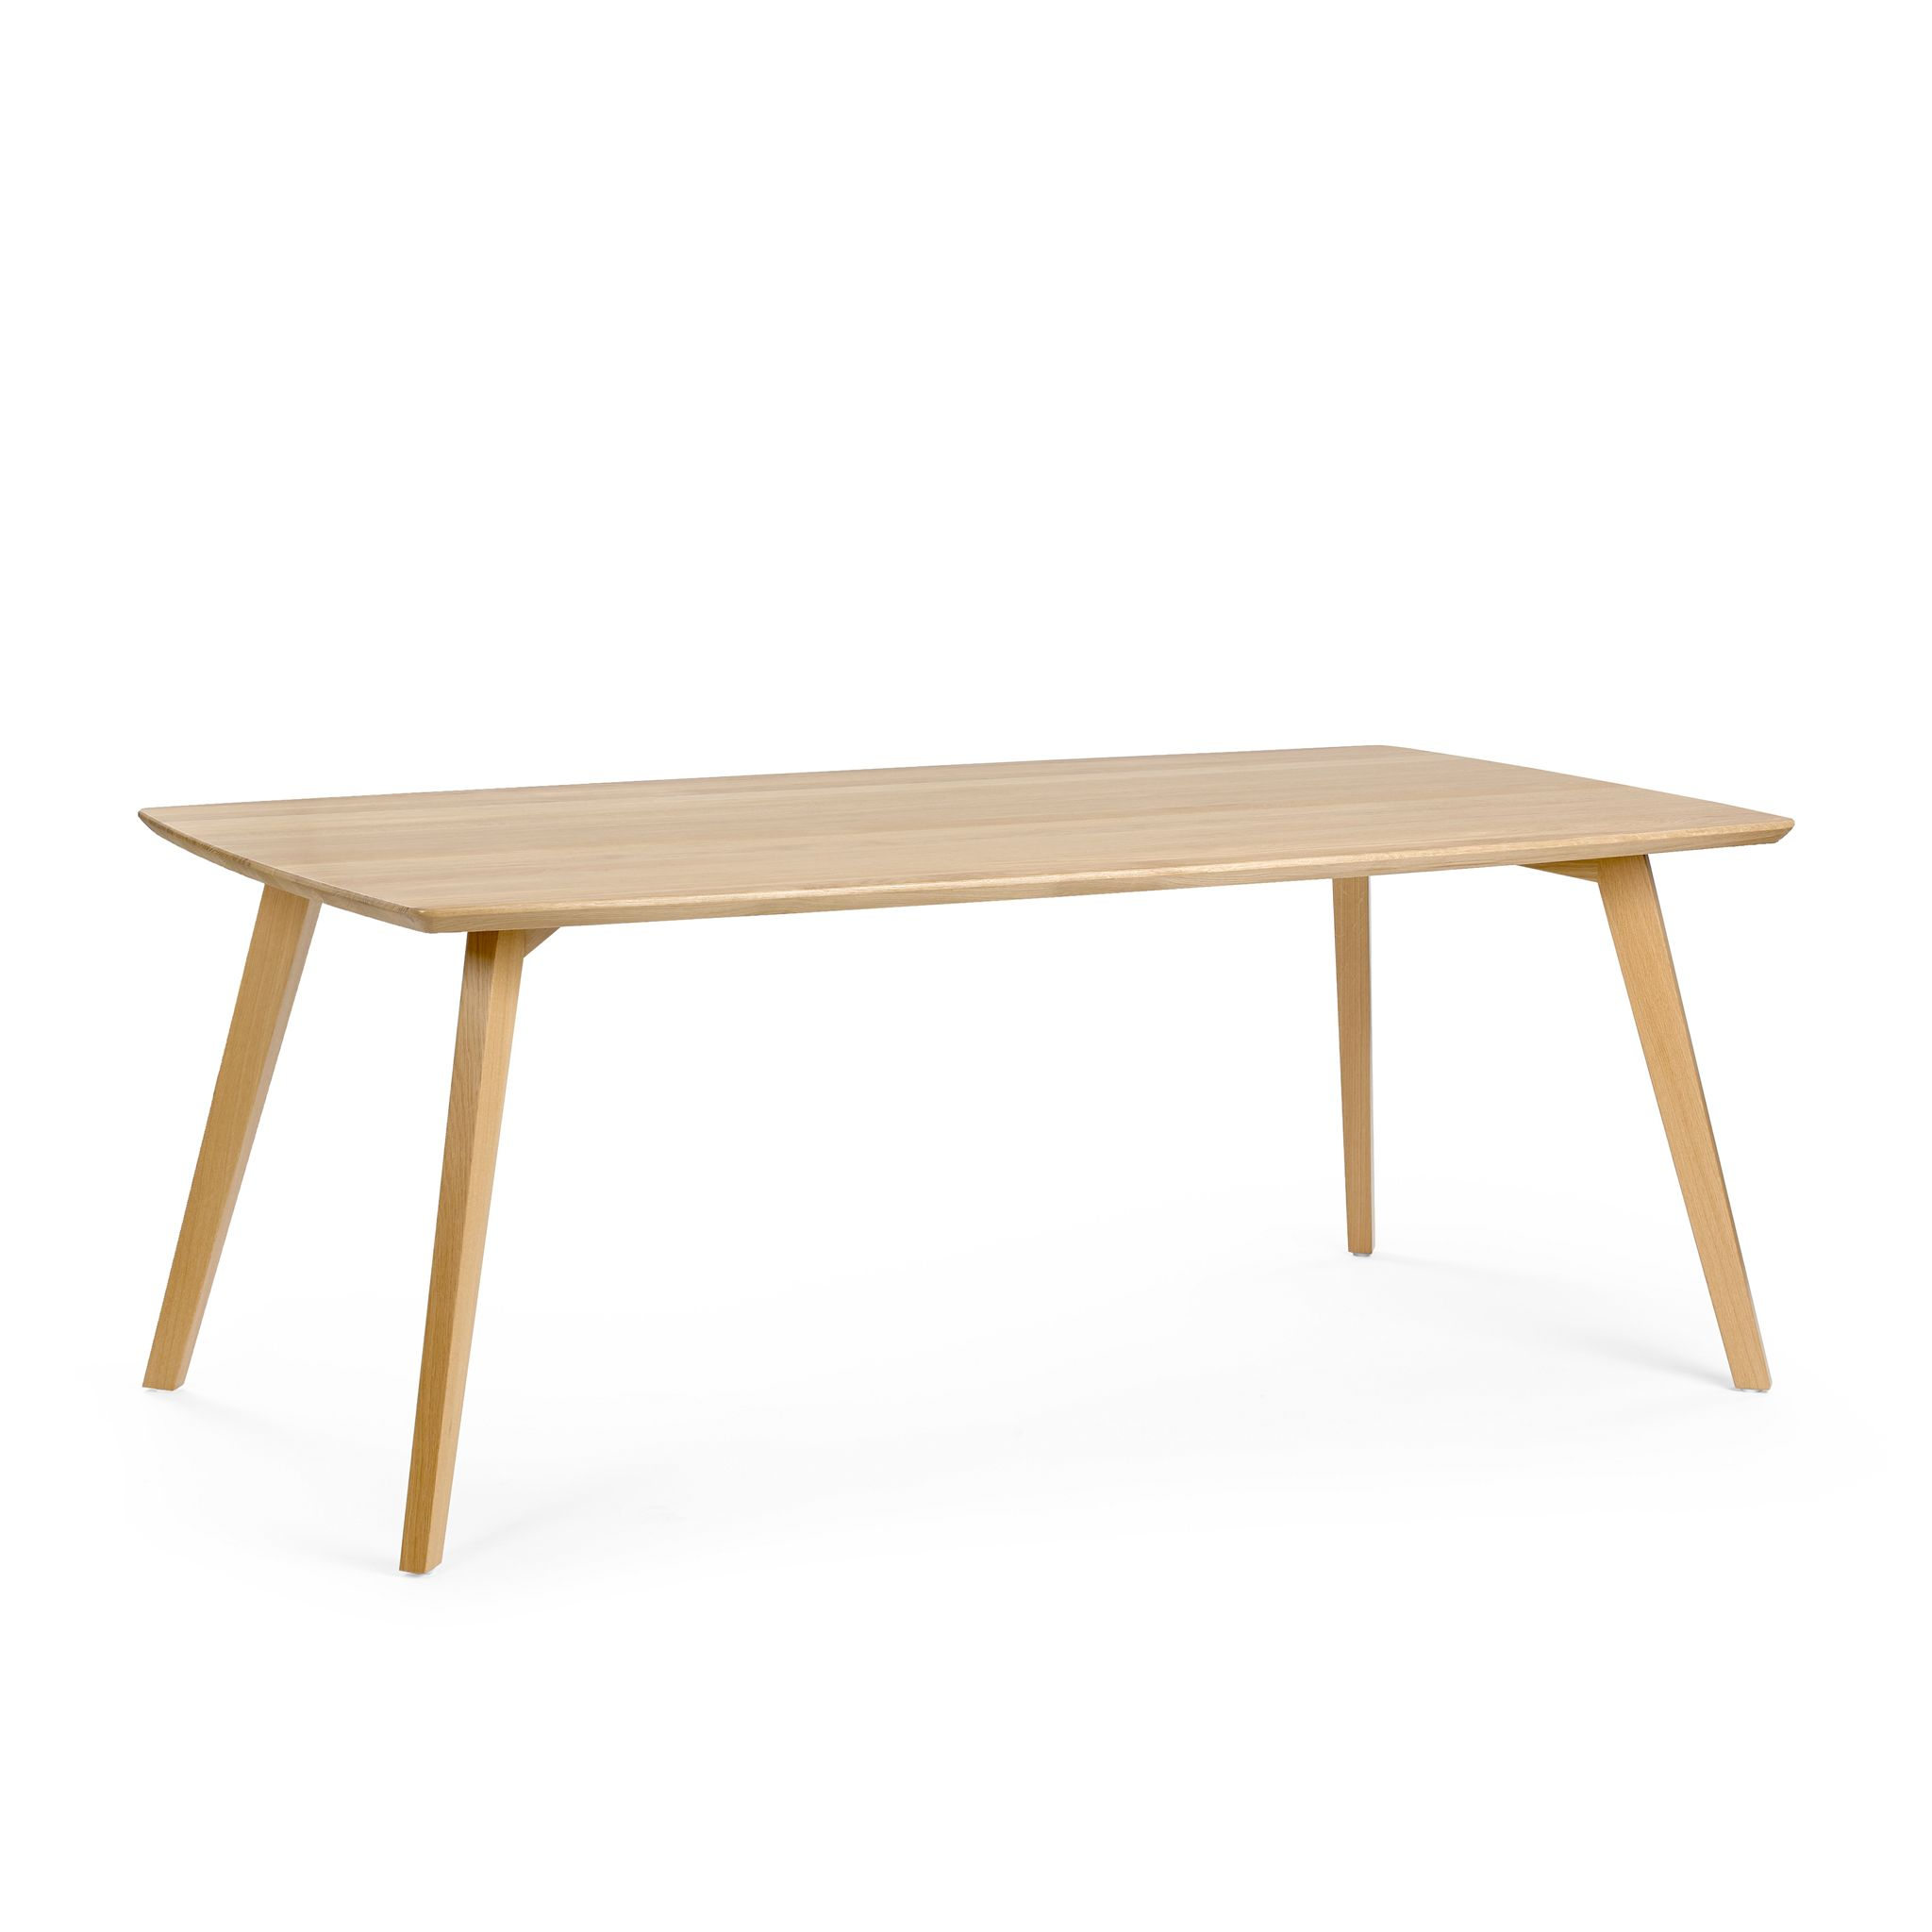 Extending custom solid wood table MOOD #T1 H76 PB - Mobitec Systems S.A.